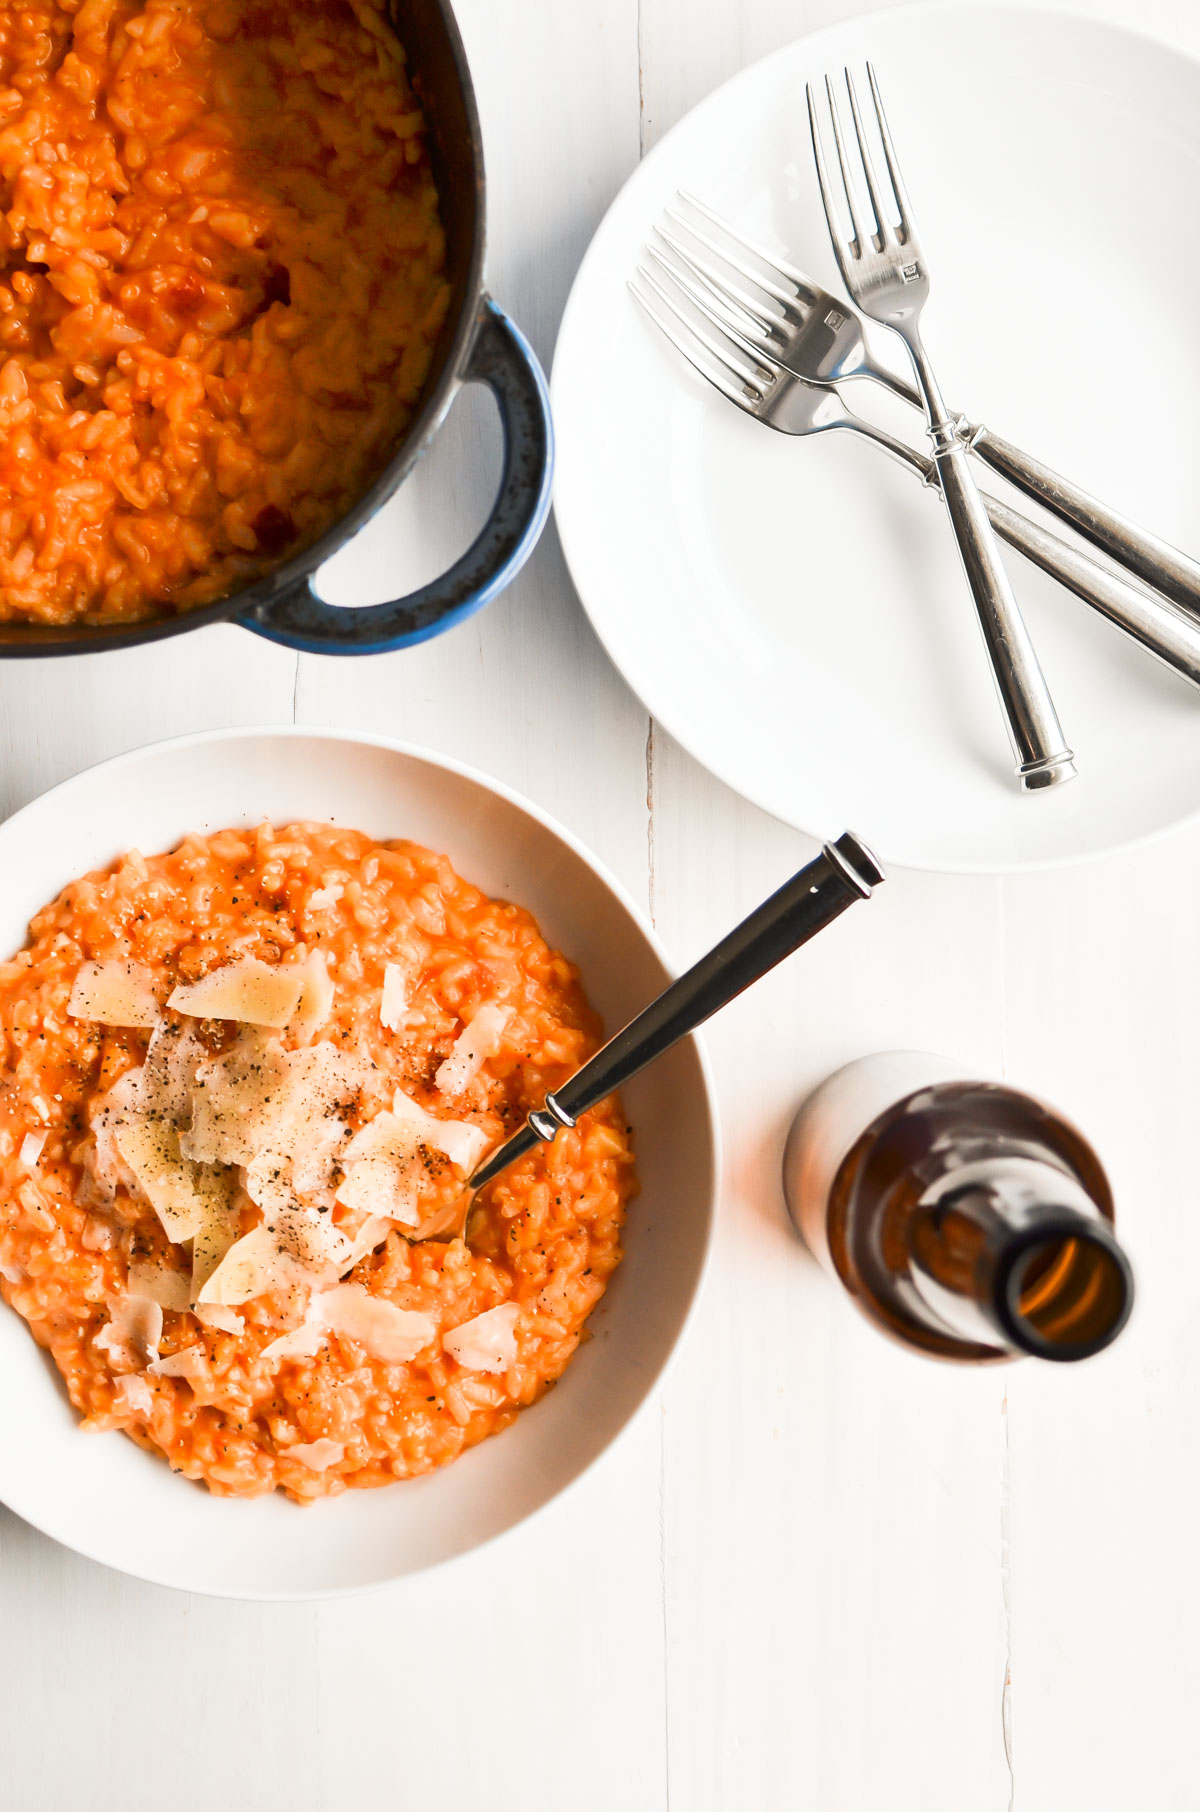 a bowl of tomato risotto with pan, plate, and forks